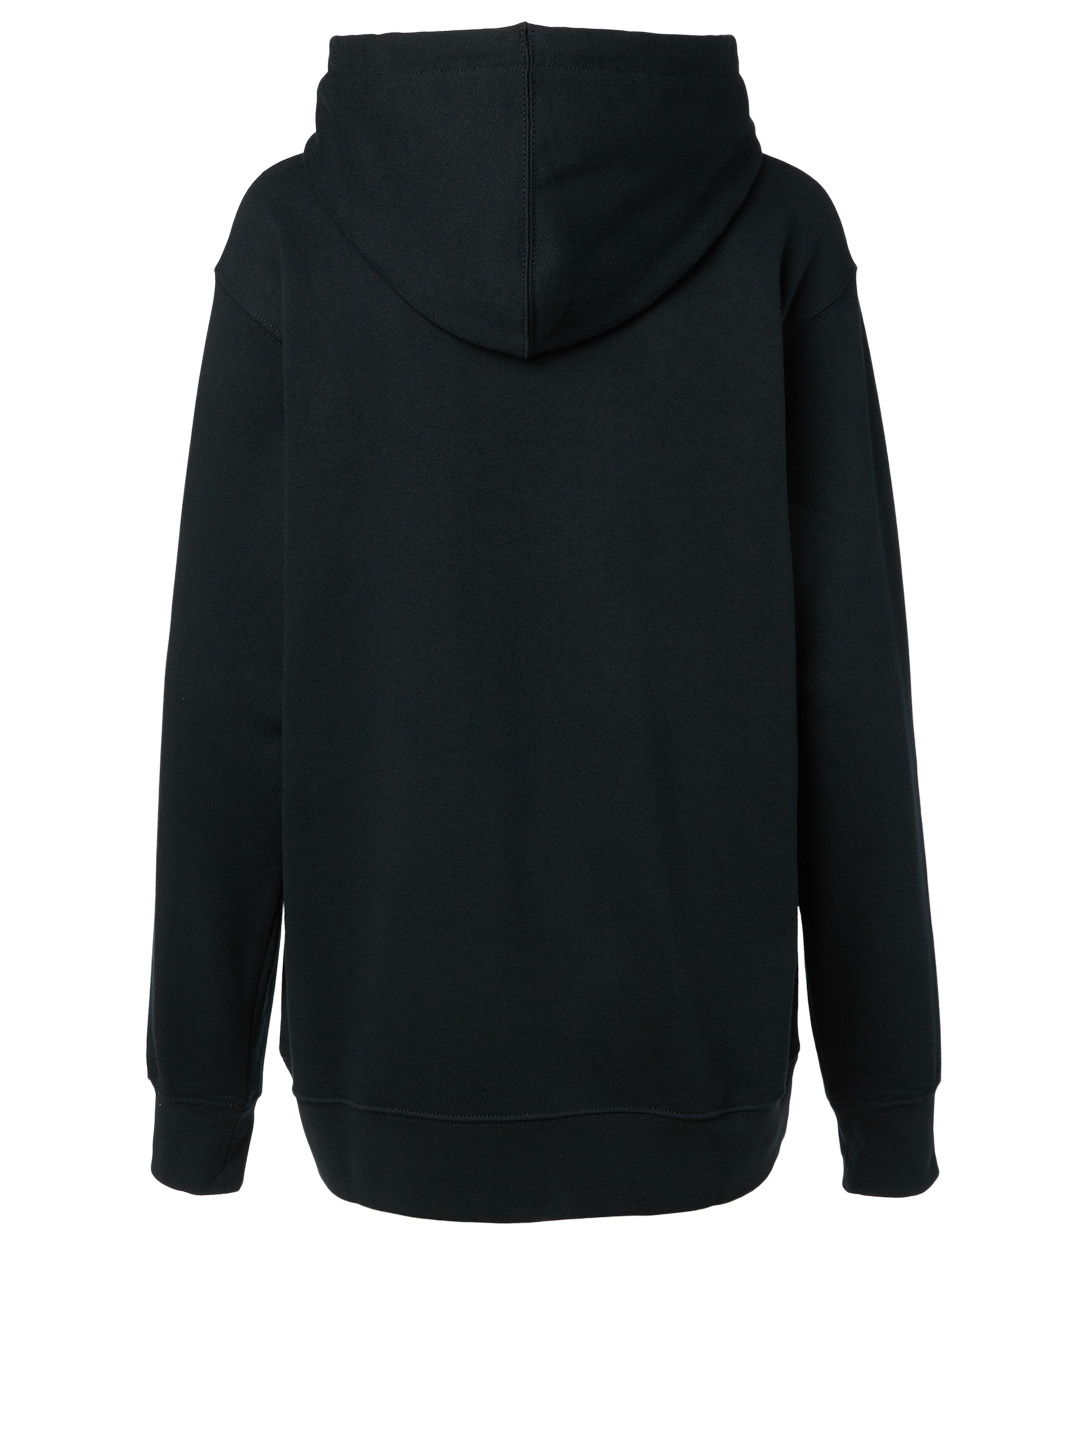 THE MARC JACOBS Cotton Logo Hoodie Women's Black